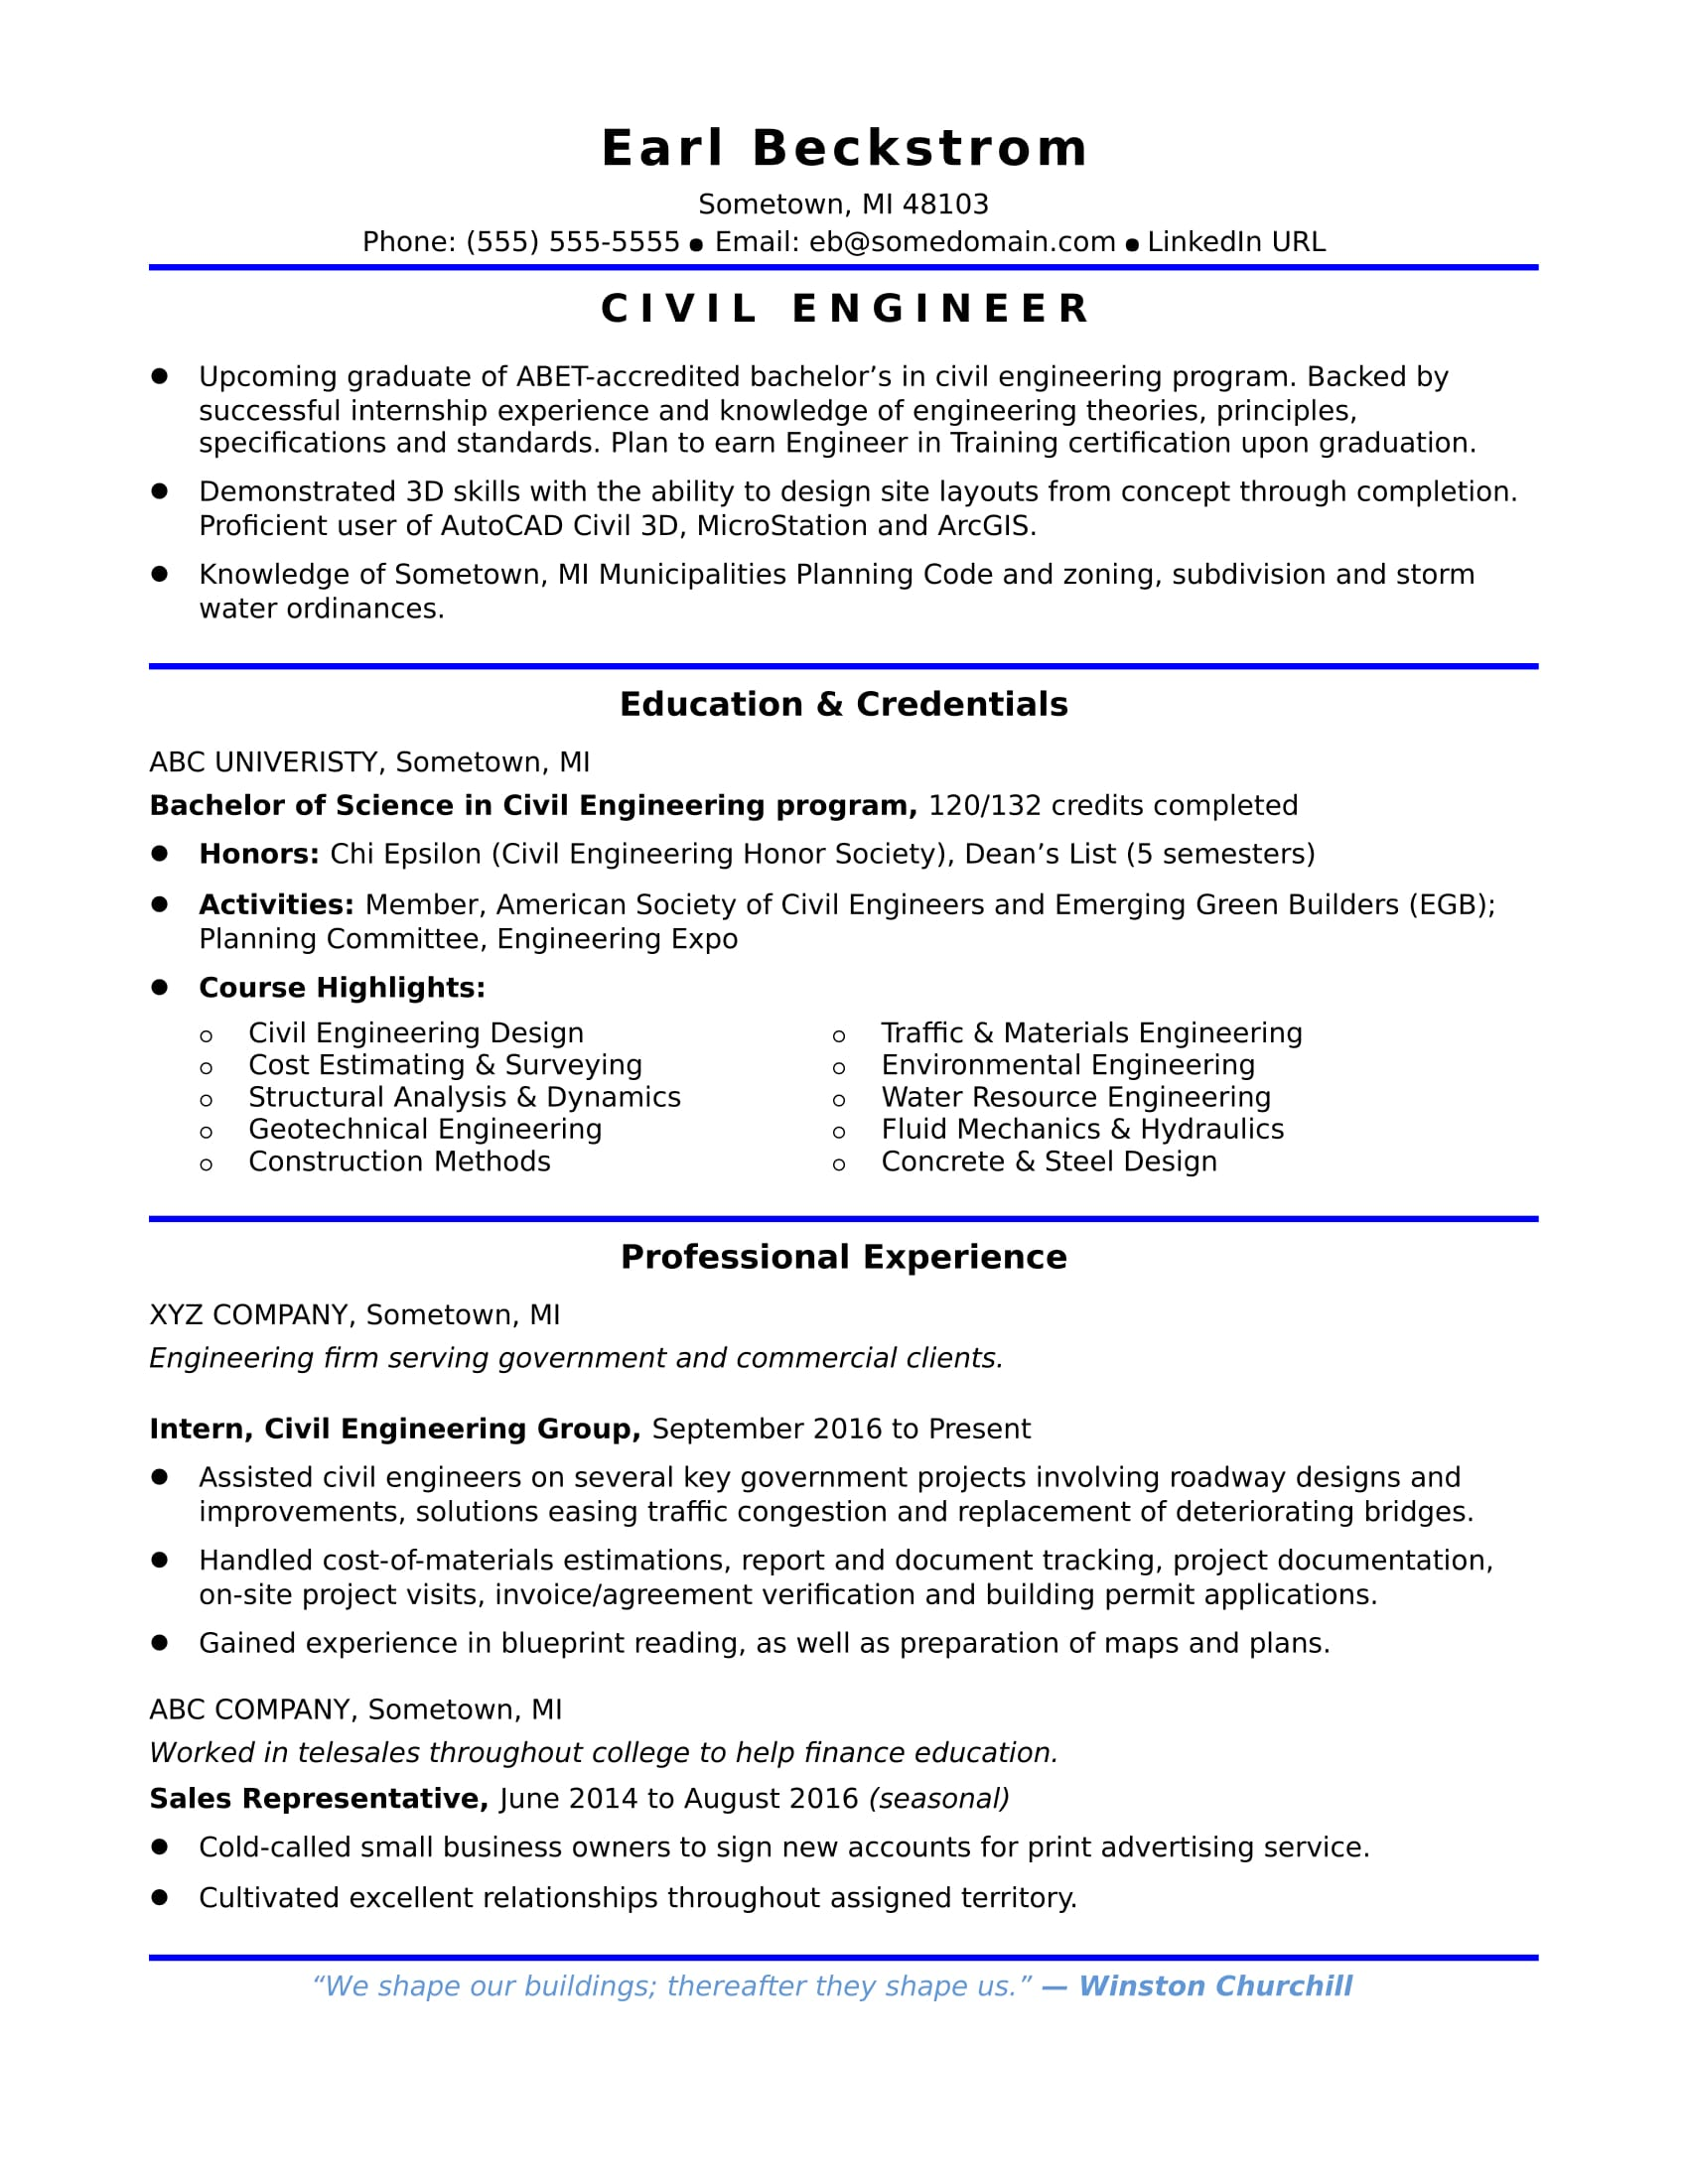 resume Resume Entry Level sample resume for an entry level civil engineer monster com engineer